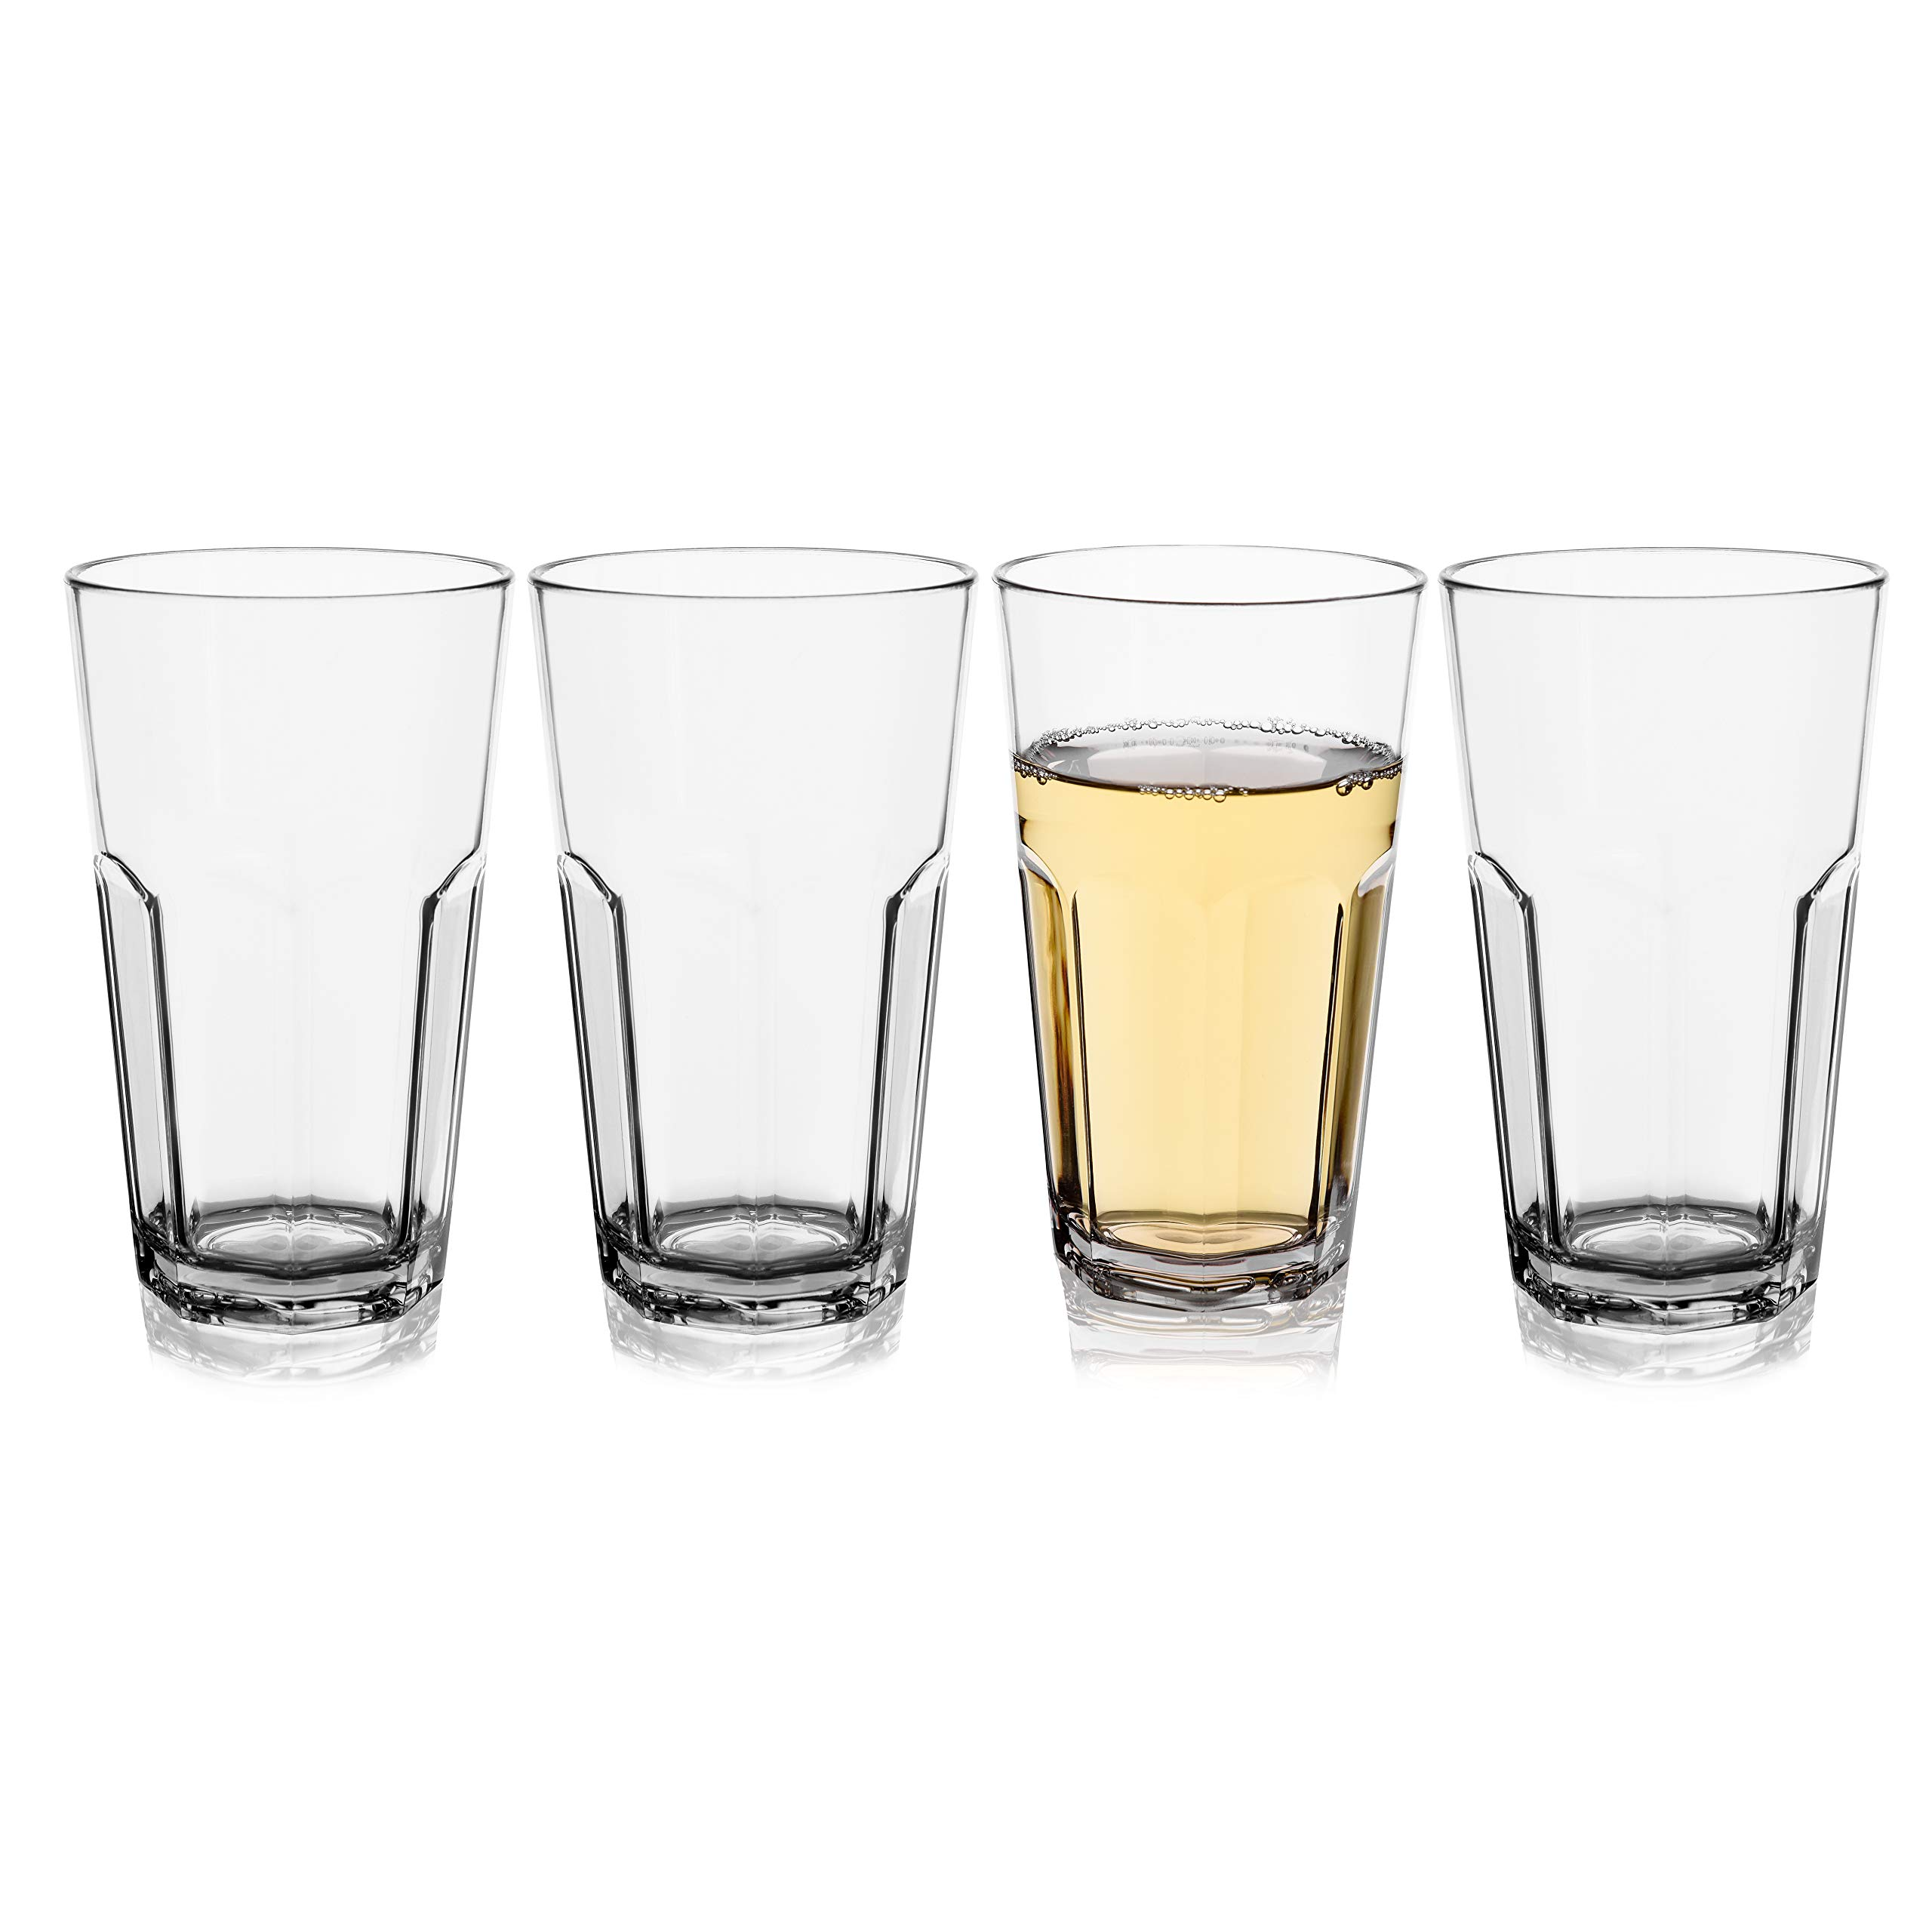 Plastic Drinking Highball Glasses 12-ounce Unbreakable Tall Tritan Crystal Tumbler for Barware, Juice, Beer, Water, Cocktails, Reusable Shatterproof BPA-FREE Dishwasher Safe Drinking Glasses Set of 4